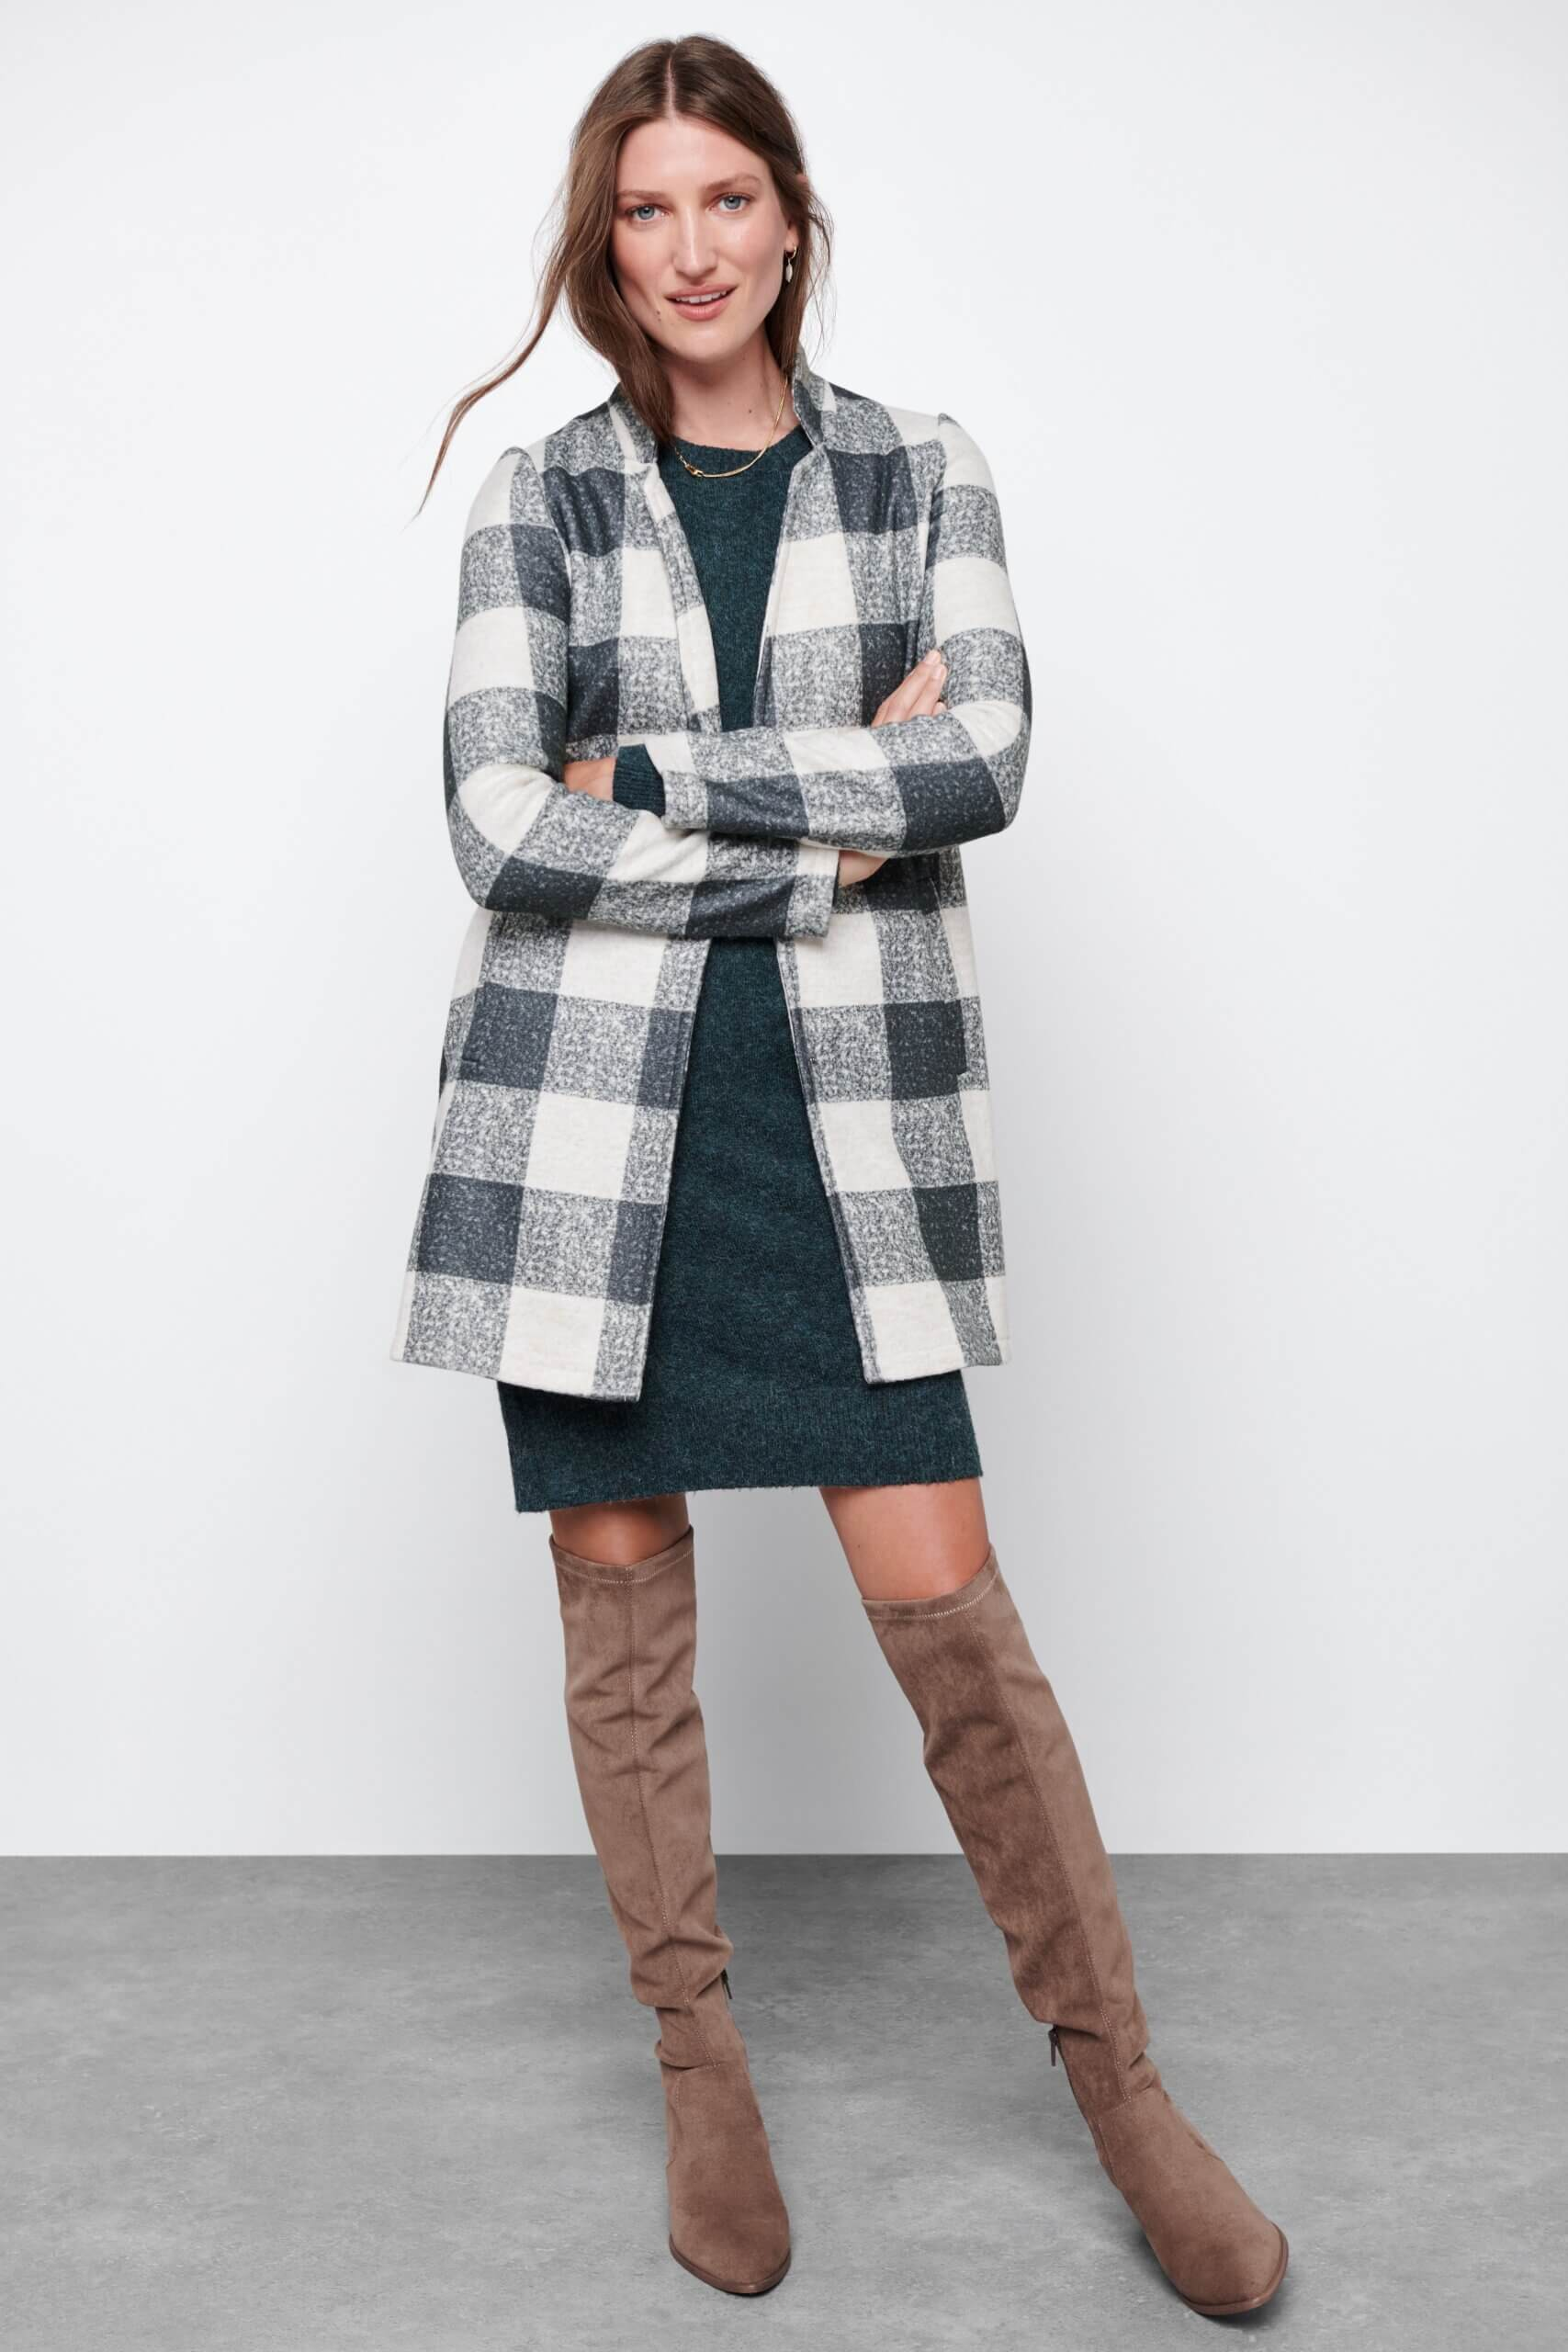 Stitch Fix women's model wearing green dress, black and white checkered cardigan and taupe over-the-knee boots.